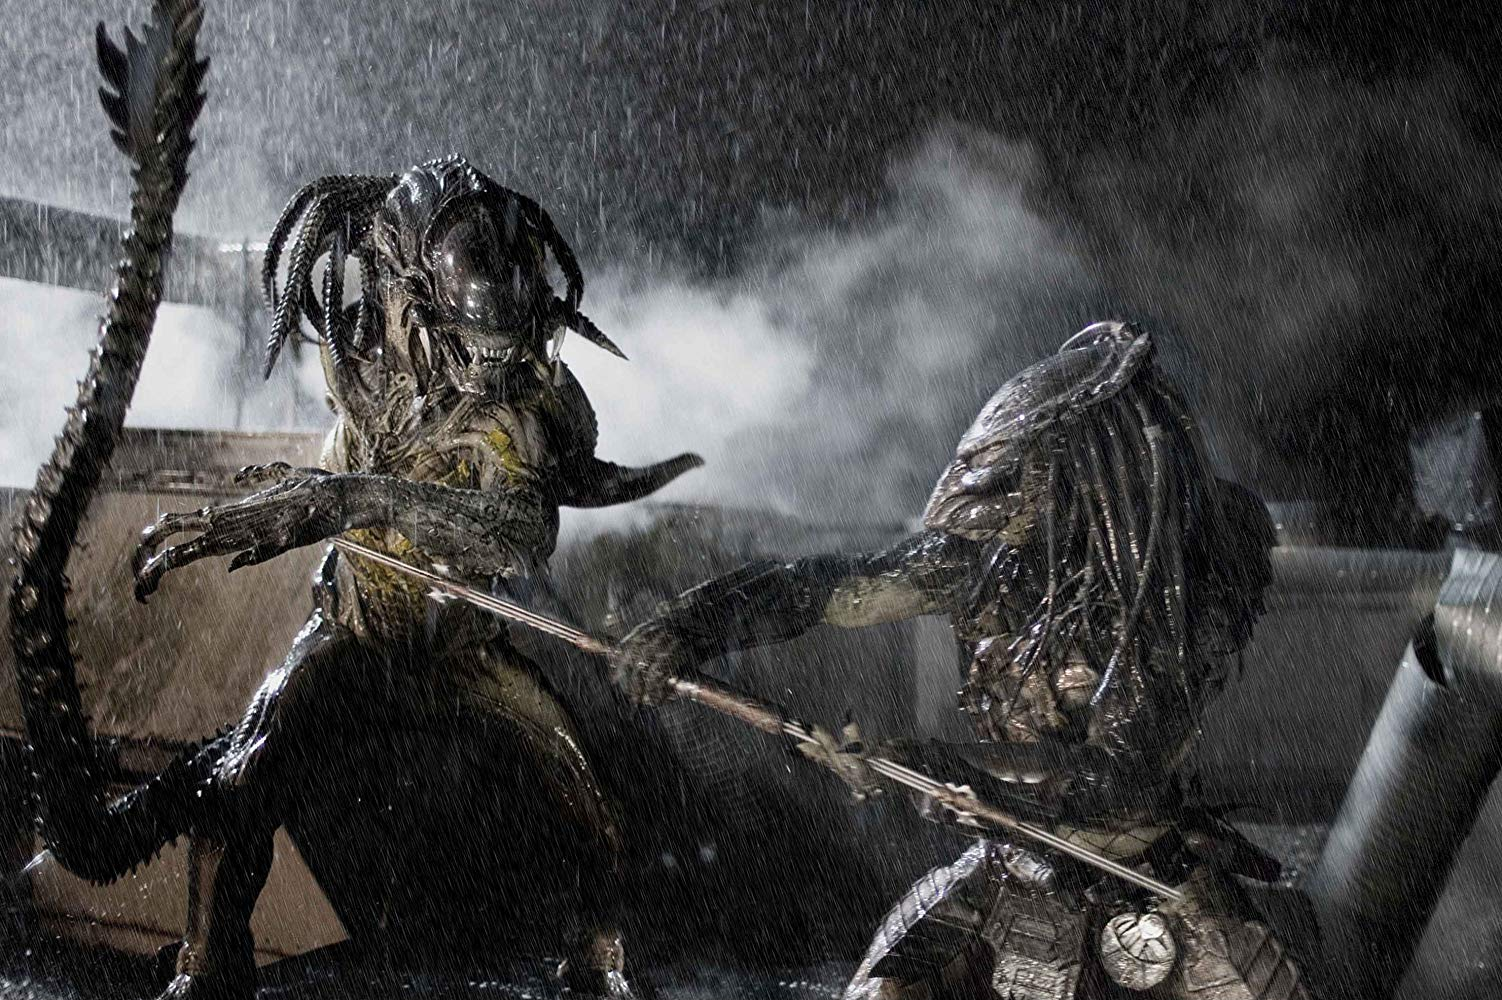 Showdown of Alien and Predator in AVPR Aliens vs Predator Requiem (2007)